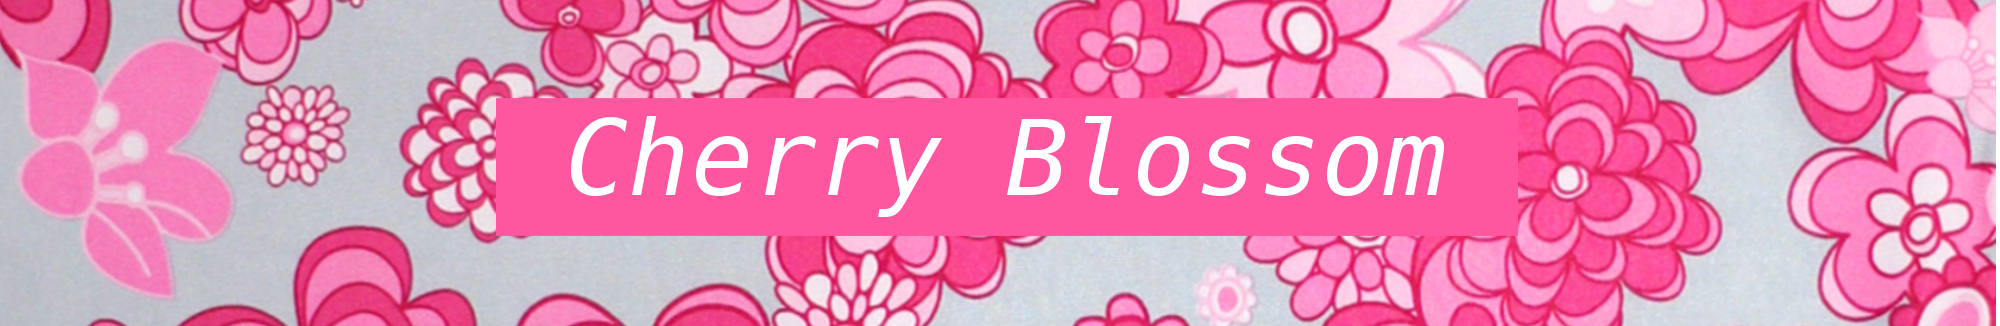 cherry-blossom-page-banner.png